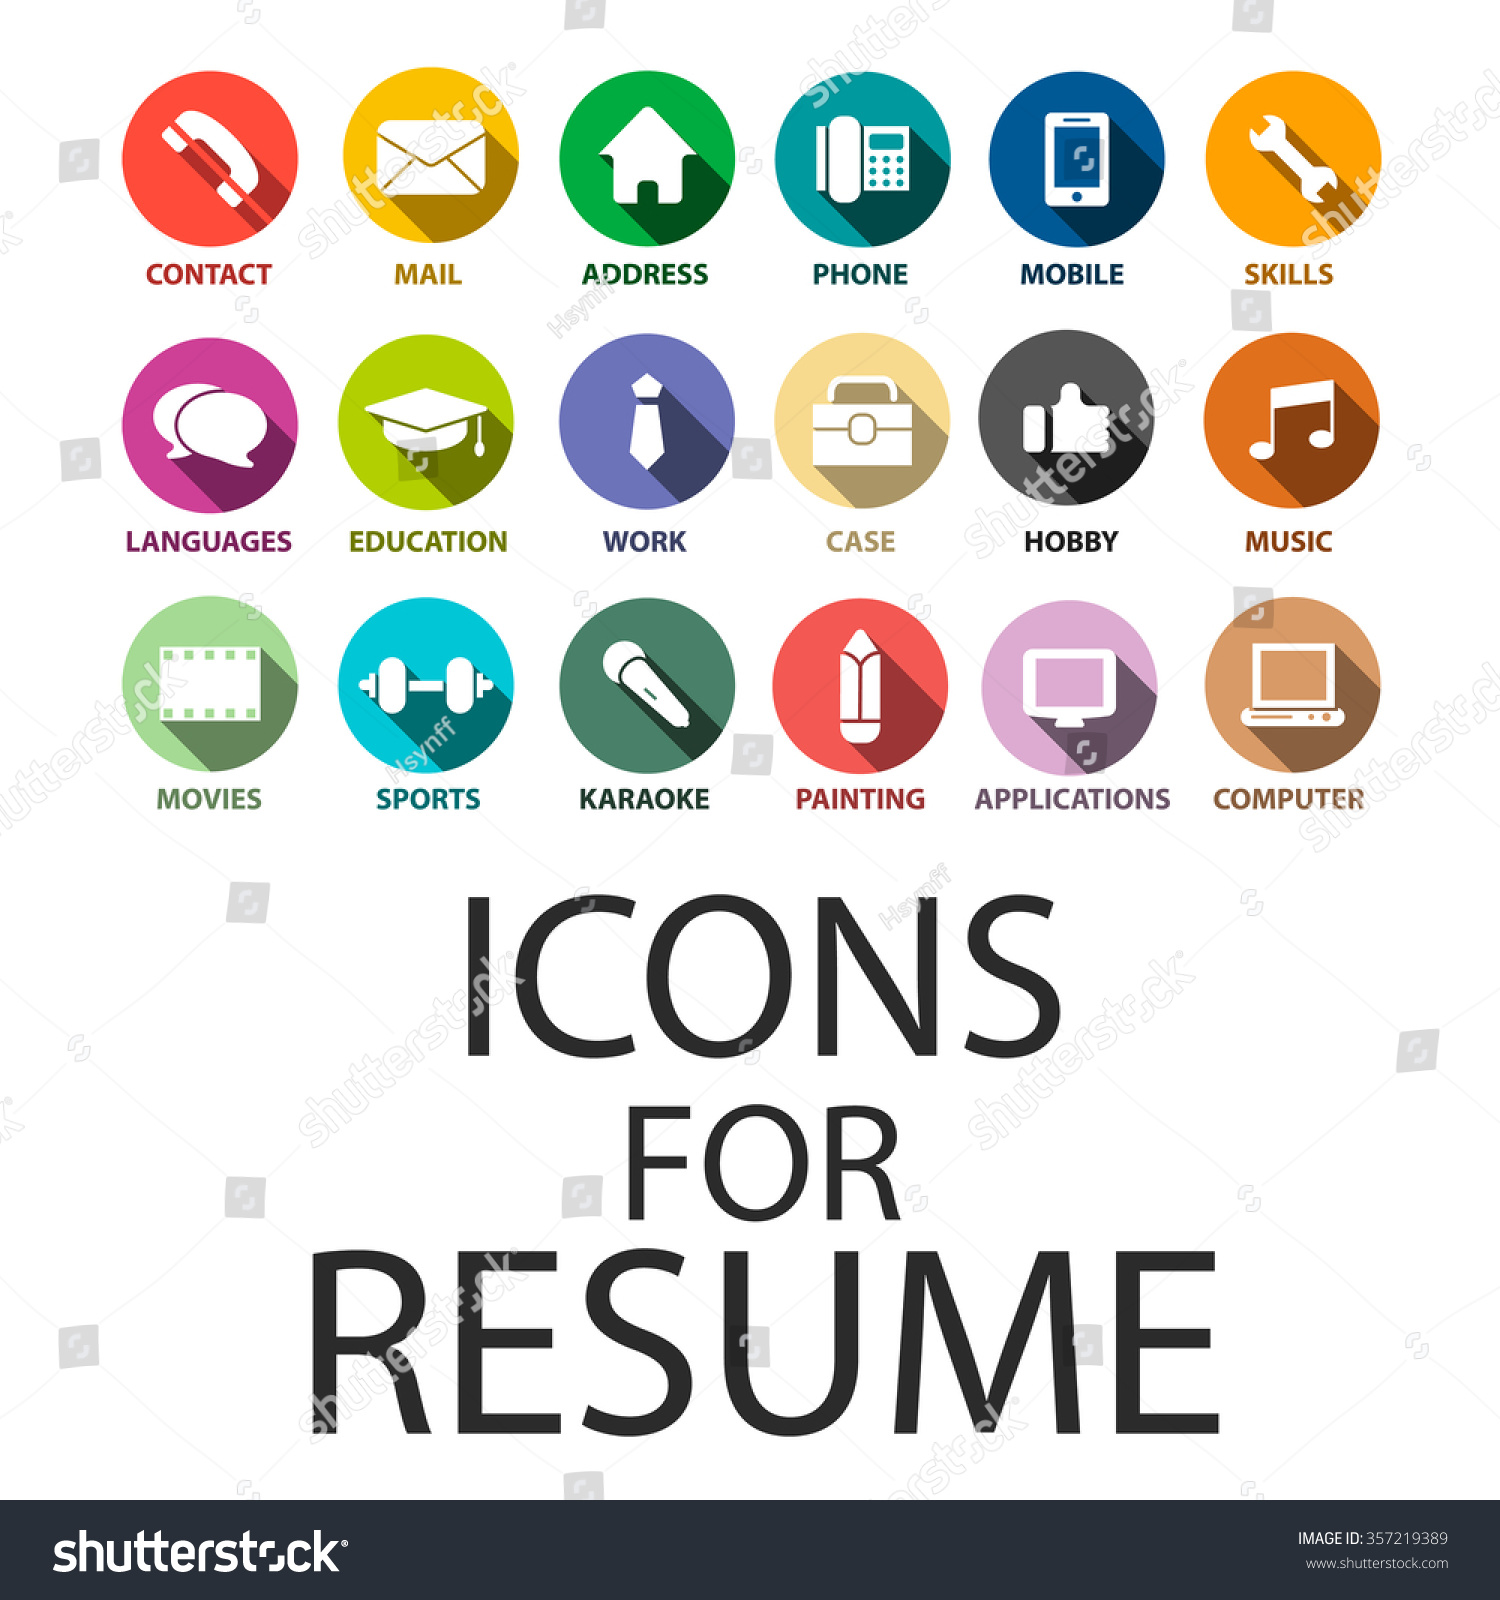 ... Resume, Visual Merchandising Resume Examples, Resume Types Examples